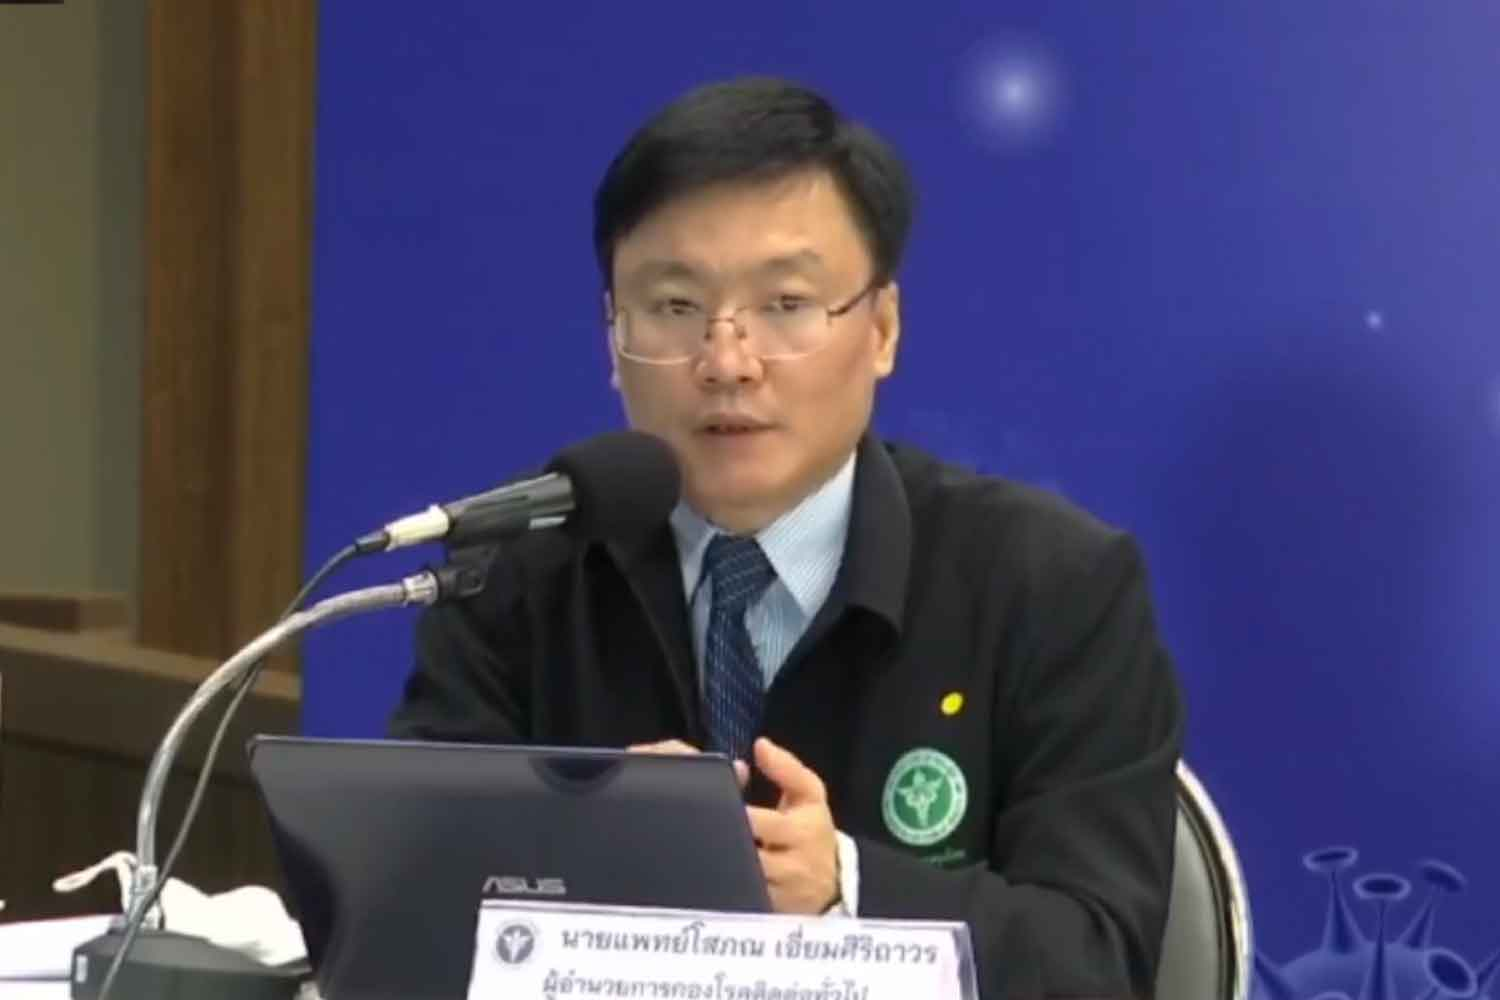 Dr Sophon Iamsirithaworn, general communicable diseases director, announces new Covid-19 cases among illegal returnees from Tachilek at the Public Health Ministry in Nonthaburi province on Wednesday. (Screenshot from the Facebook page of the Centre for Covid-19 Situation Administration)